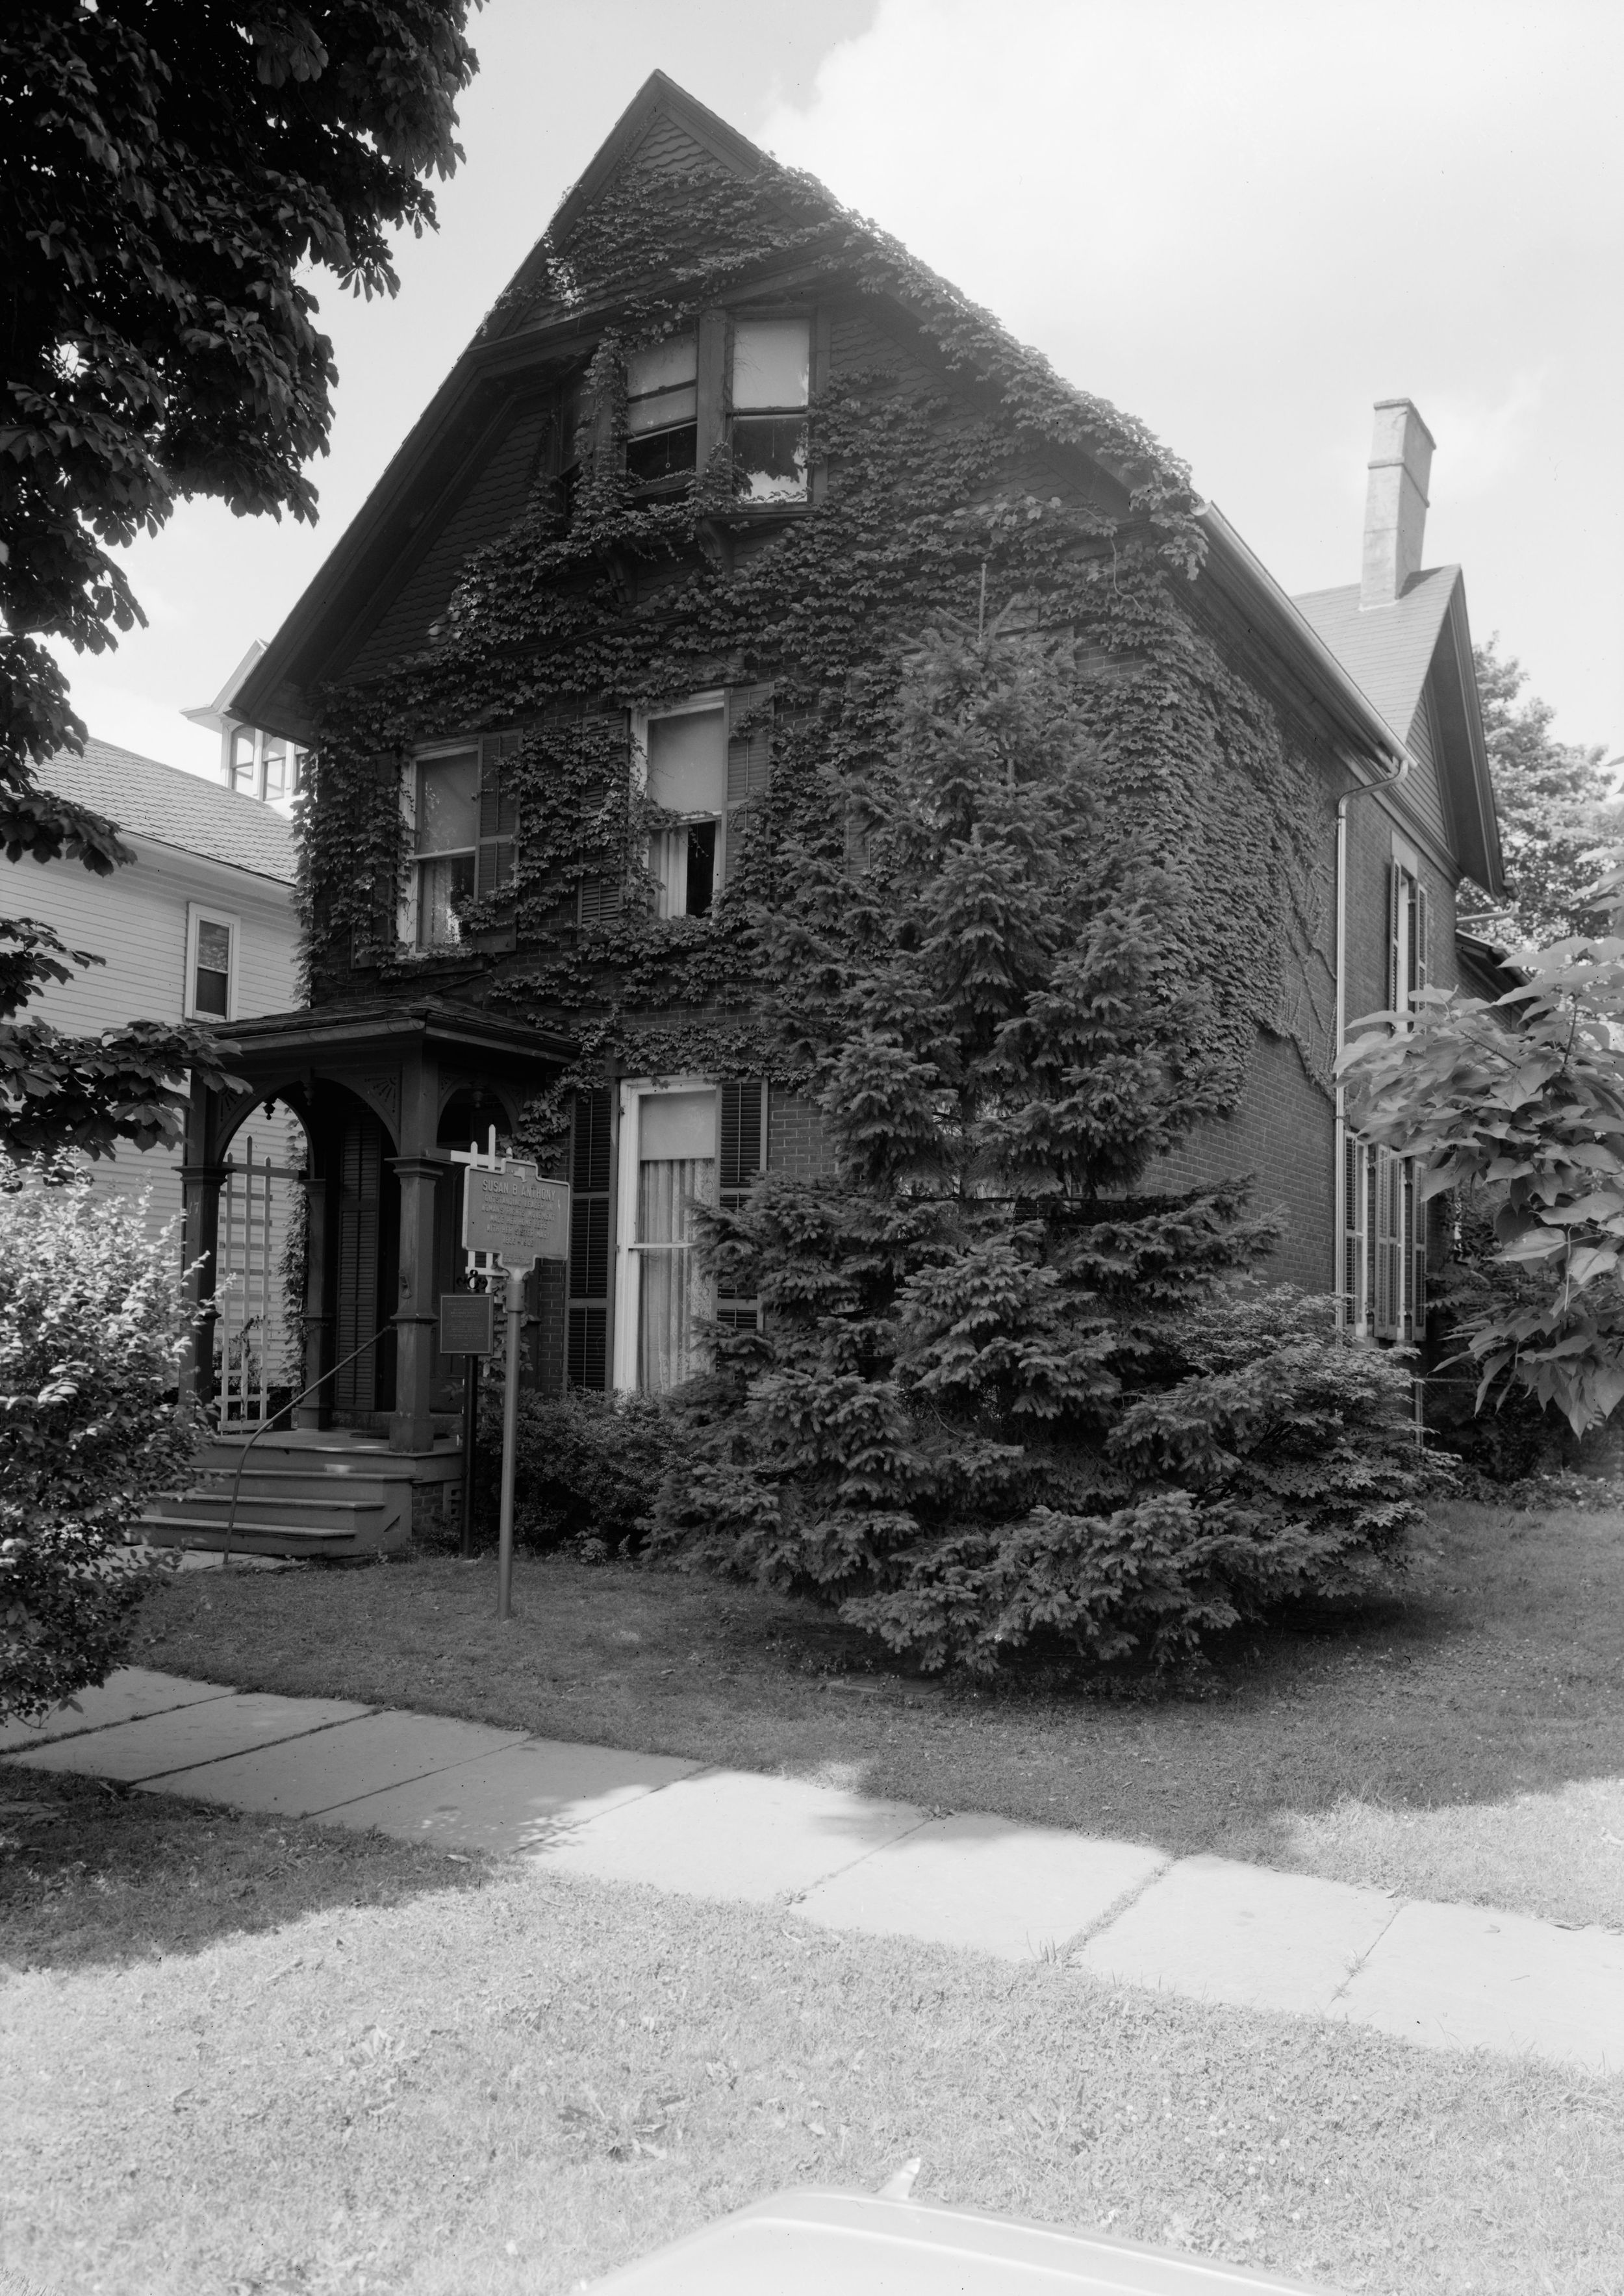 Susan B. Anthony's Rochester, NY home.